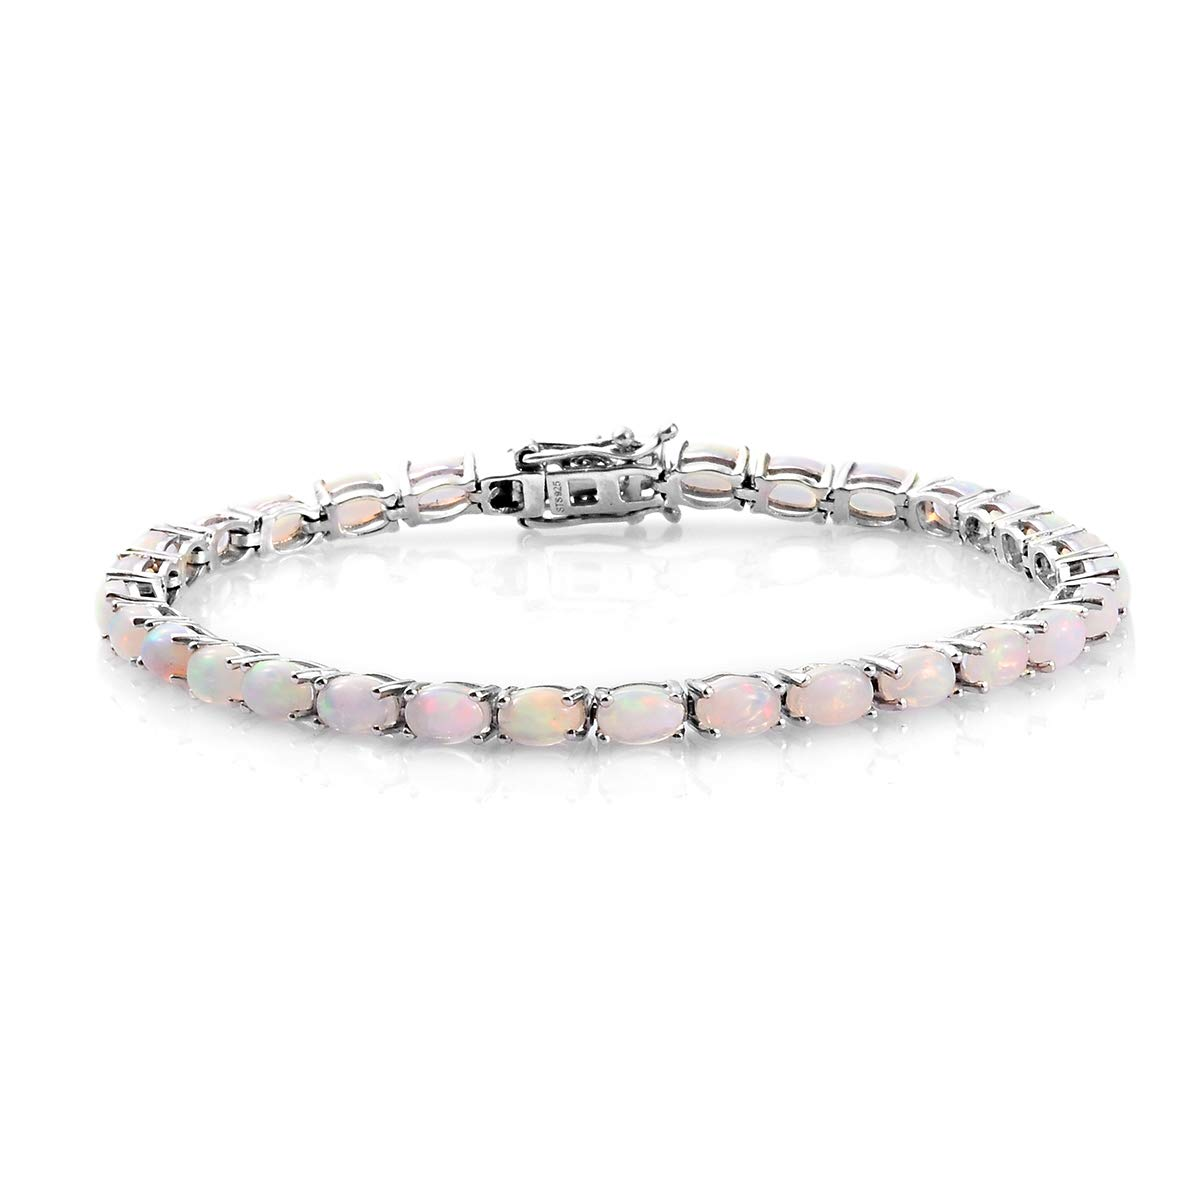 Oval Welo Opal Line Tennis Bracelet 925 Sterling Silver Platinum Plated Jewelry for Women Size 8 inch by Shop LC Delivering Joy